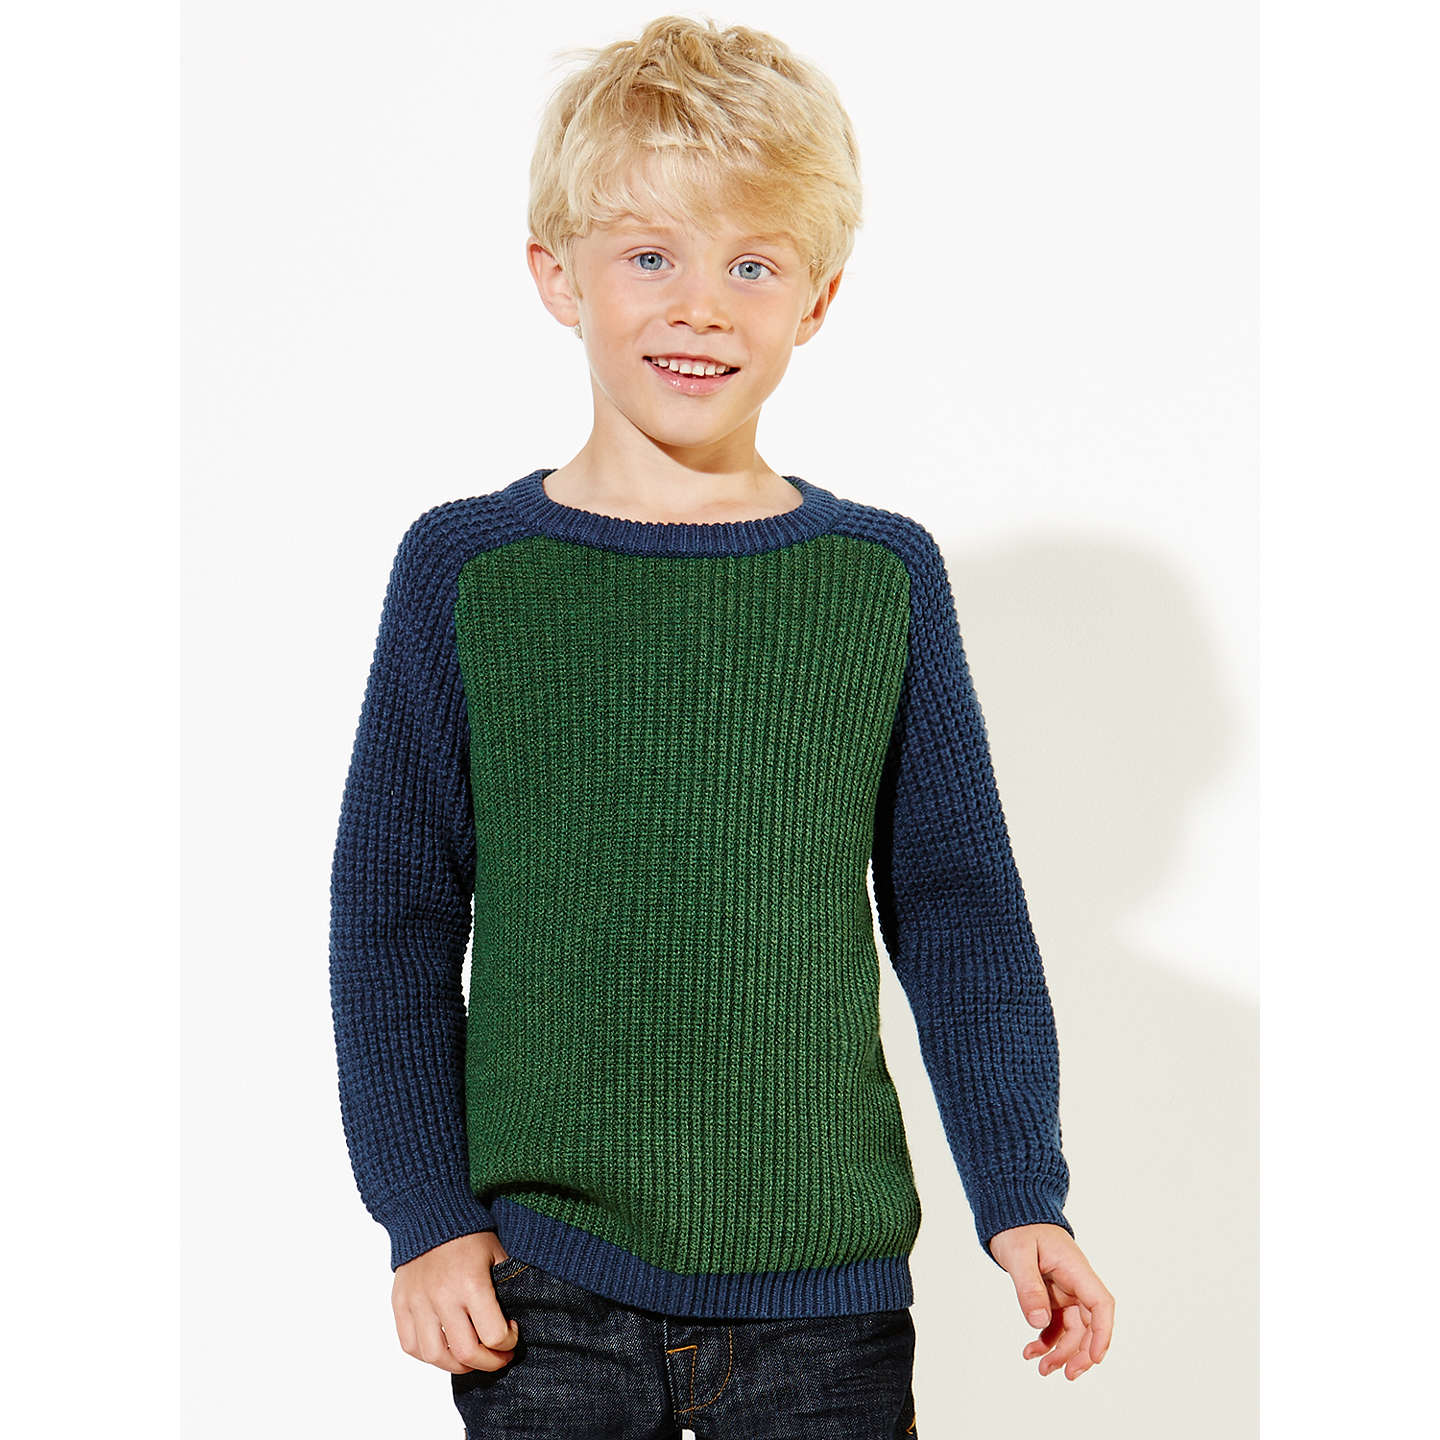 BuyJohn Lewis Boy Block Colour Knit Jumper, Green/Blue, 2 years Online at johnlewis.com